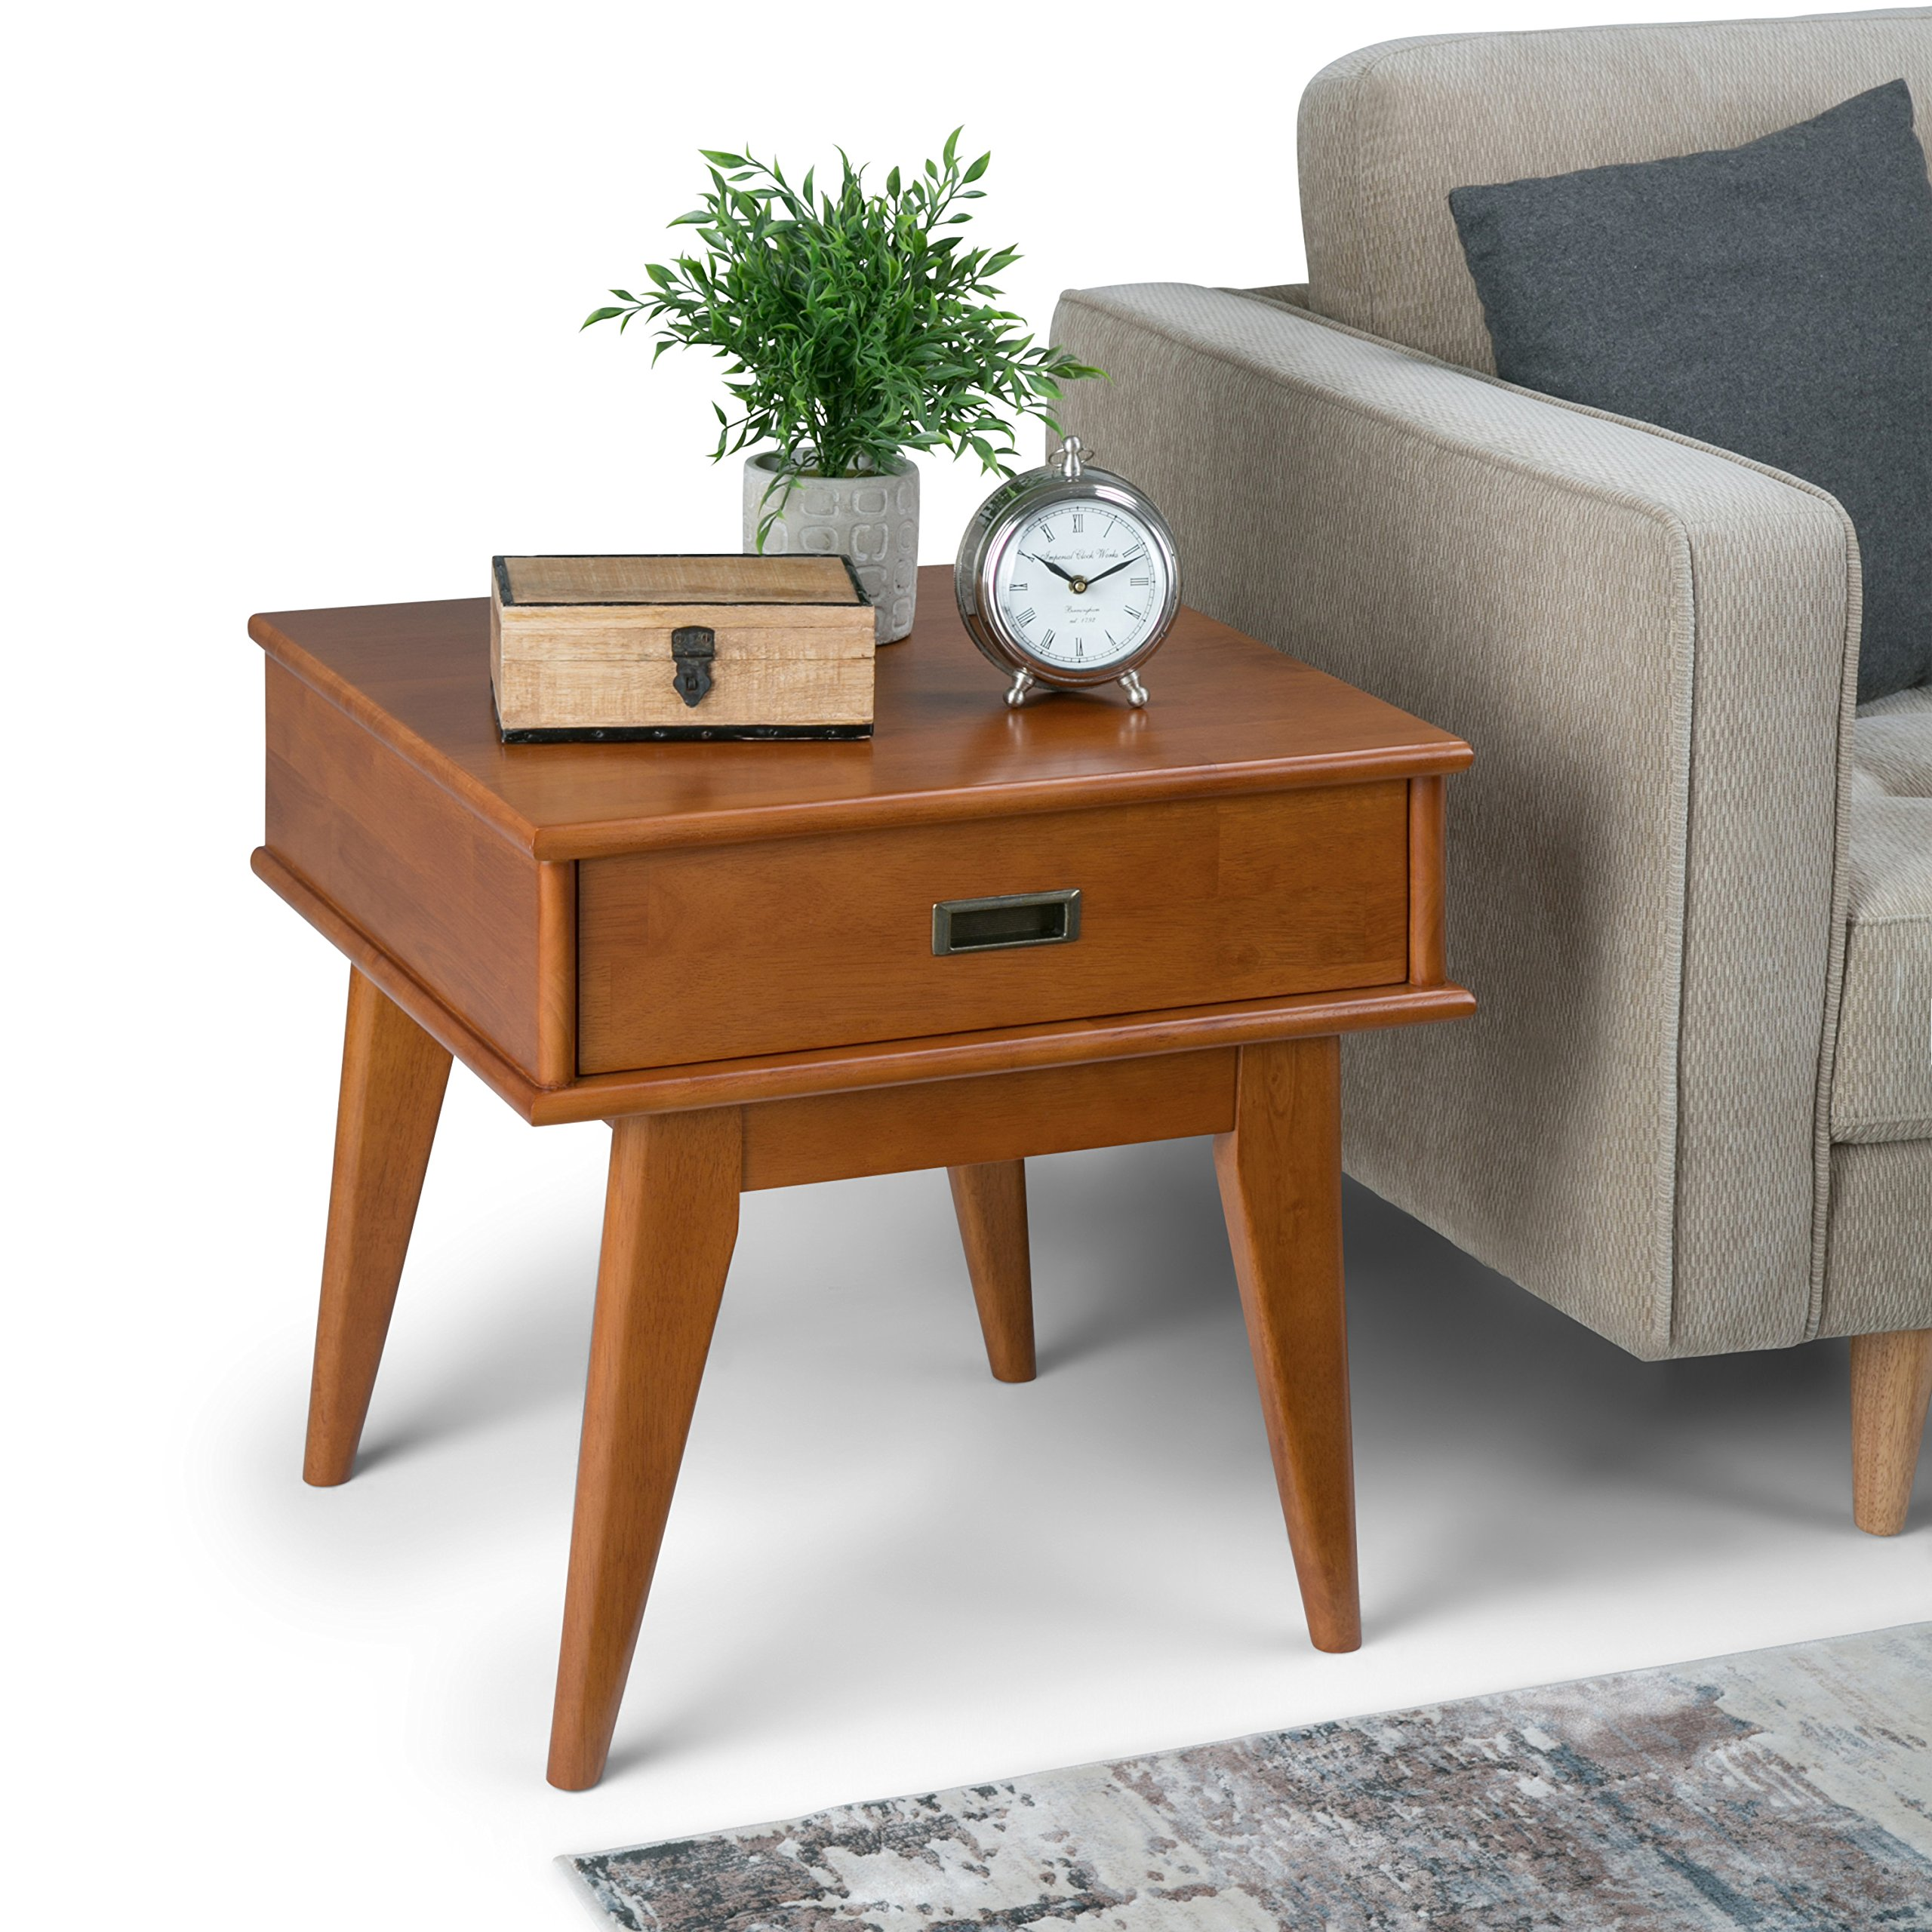 Rectangle Mid Century Modern End Side Table in Teak Brown with Storage